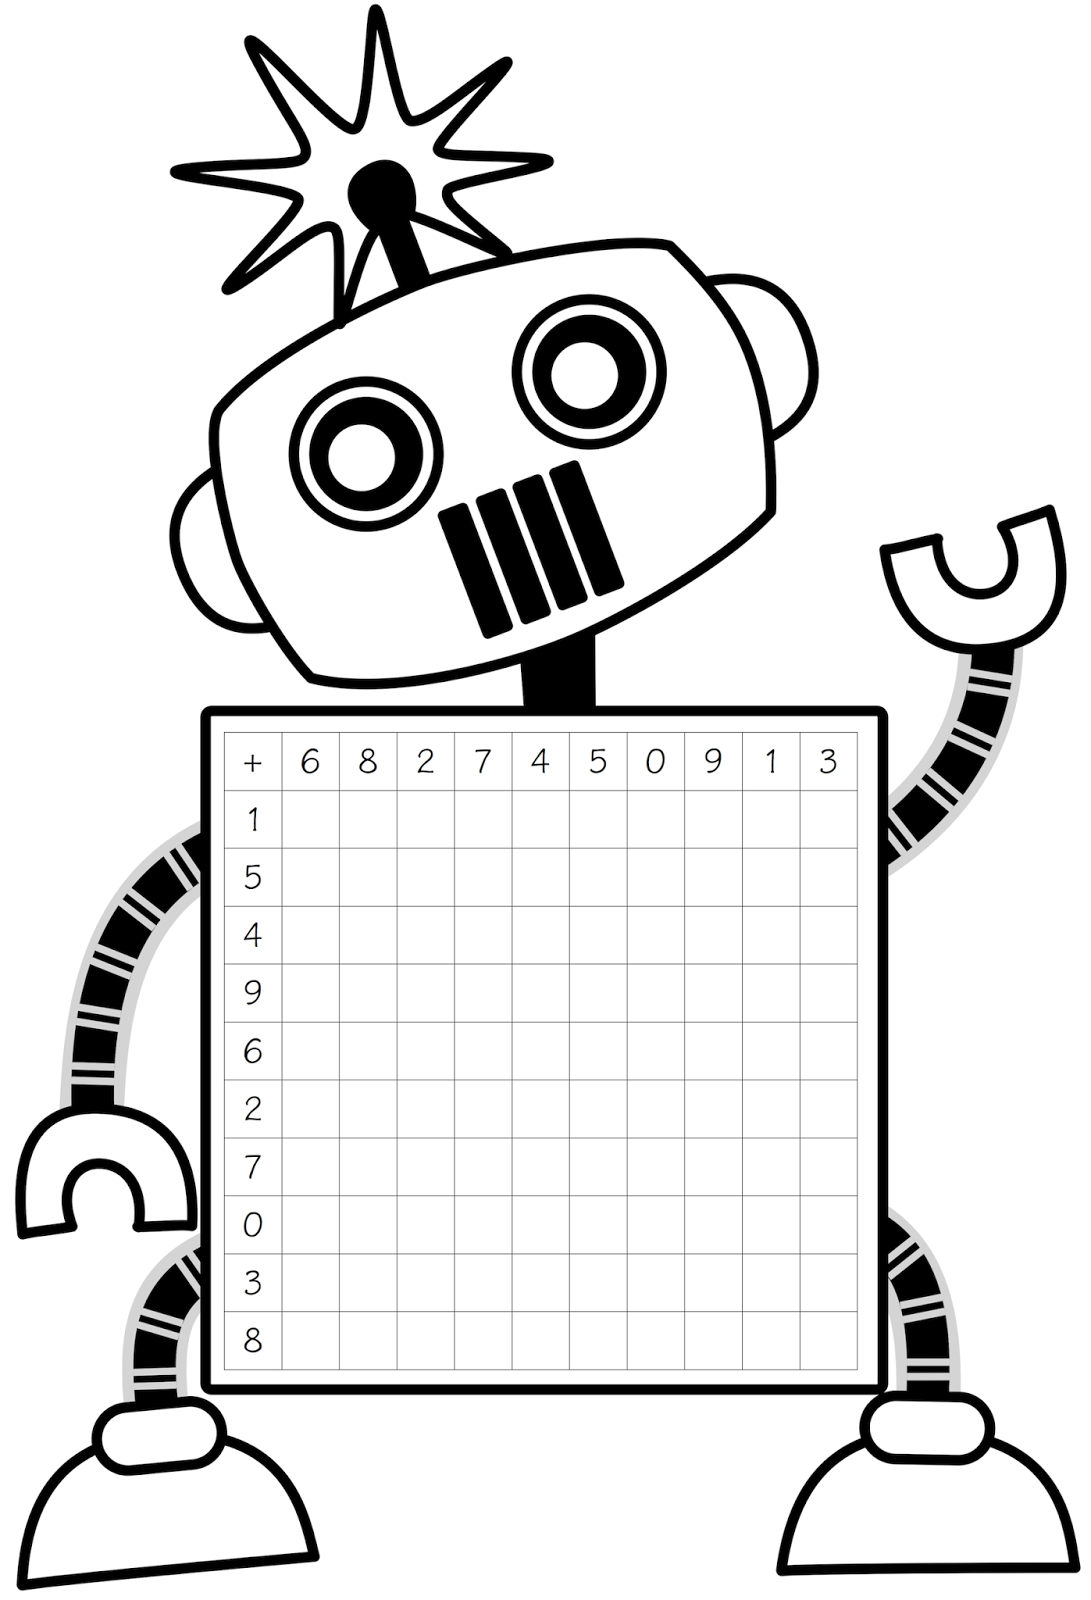 Finger Patterns Free And Printable Finger Pattern Cards Four To An A4 Page Click On The Image To Open The Dow Kids Math Worksheets Numeracy Teaching Math [ 1600 x 1091 Pixel ]